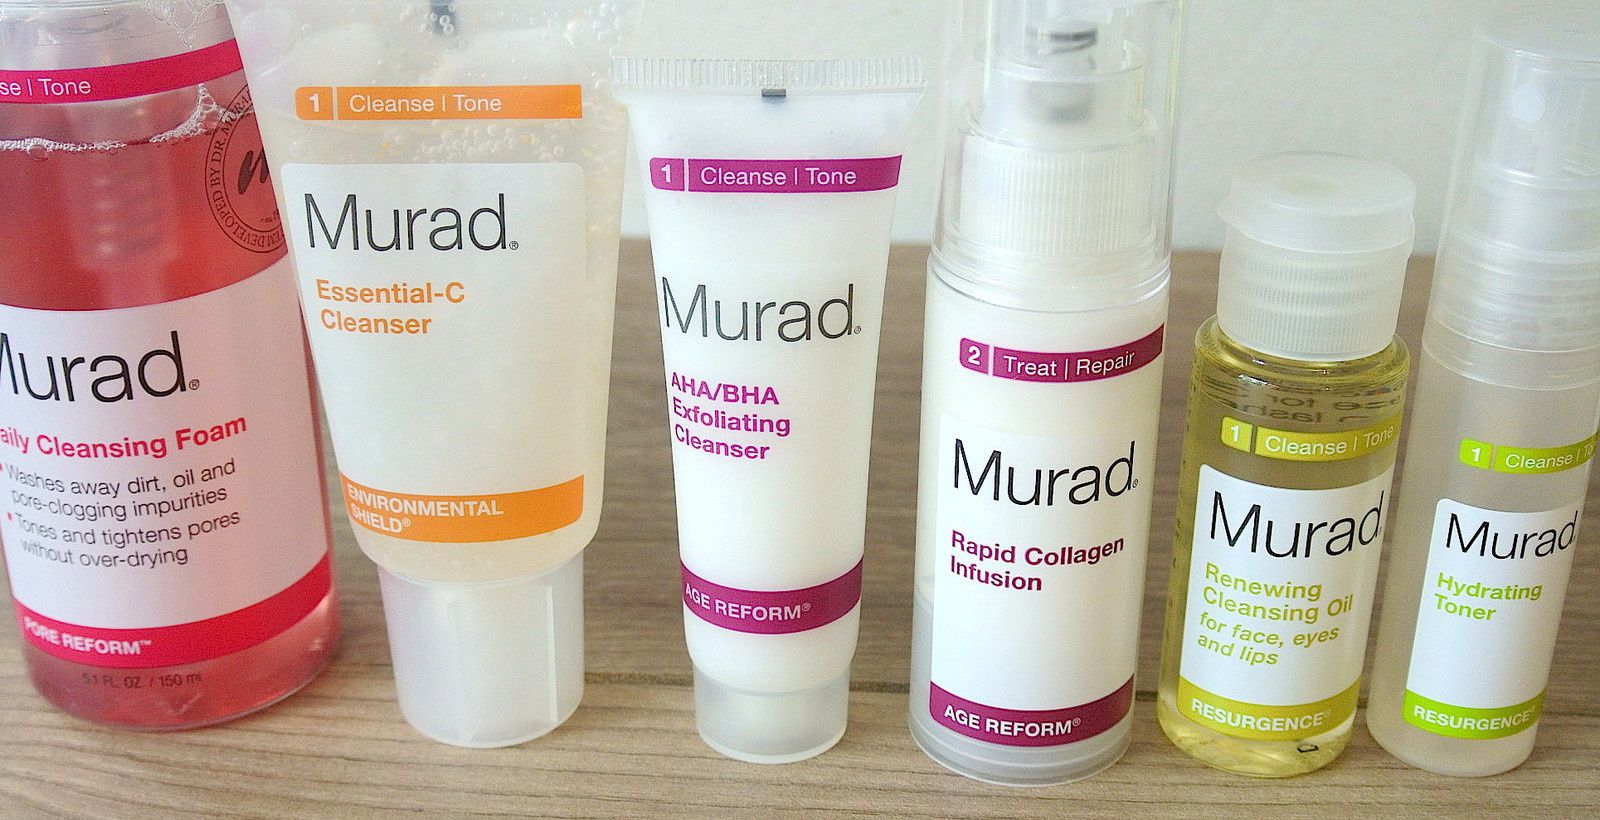 NEW IN// Pore Reform Daily Cleansing &amp&#x3B; Rapid Infusion Collagen MURAD